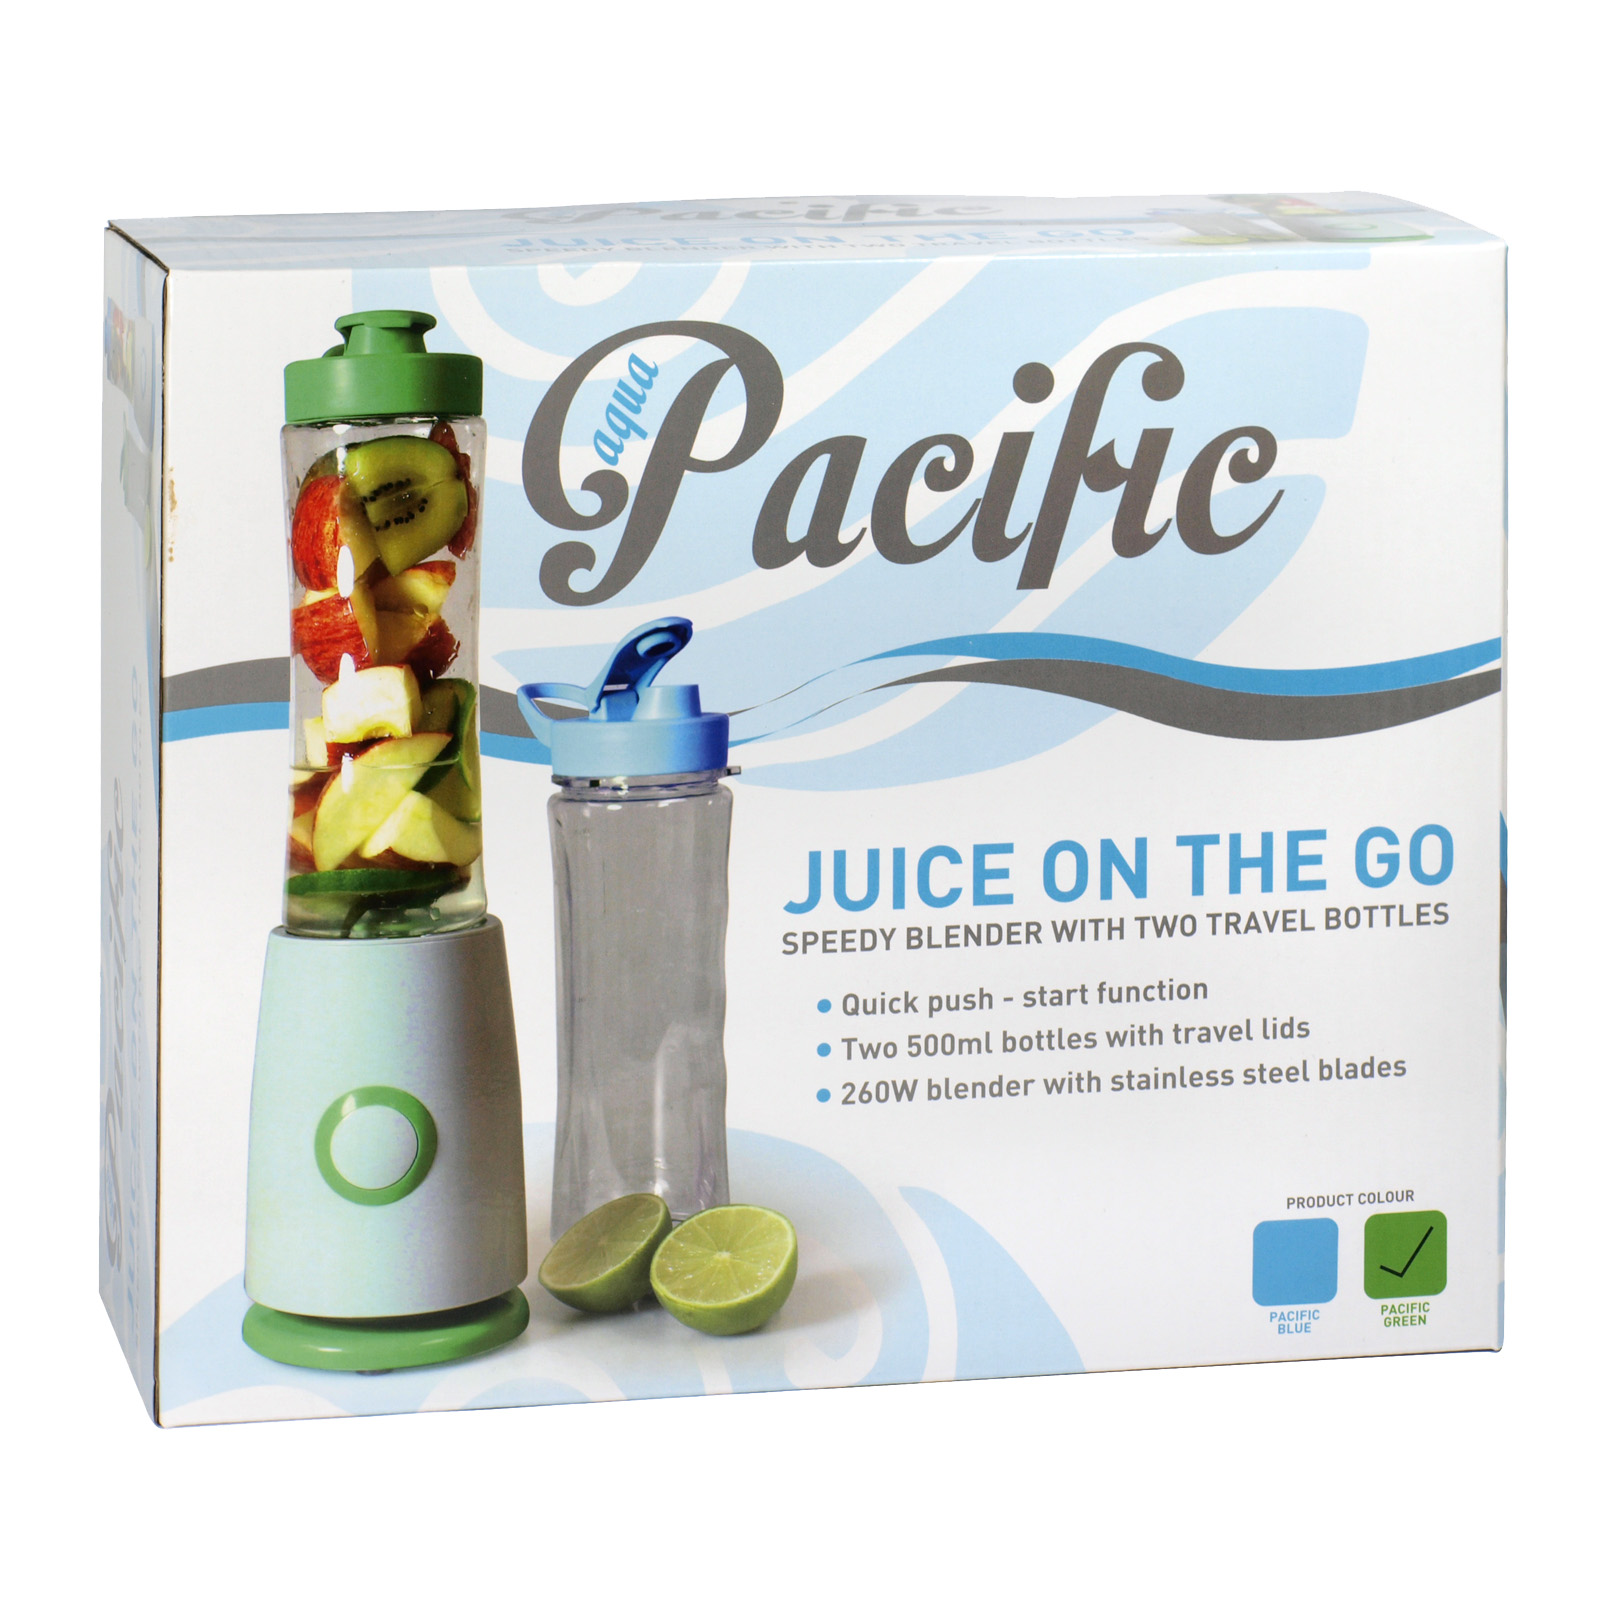 AQUA PACIFIC JUICE ON THE GO SPEEDY BLENDER